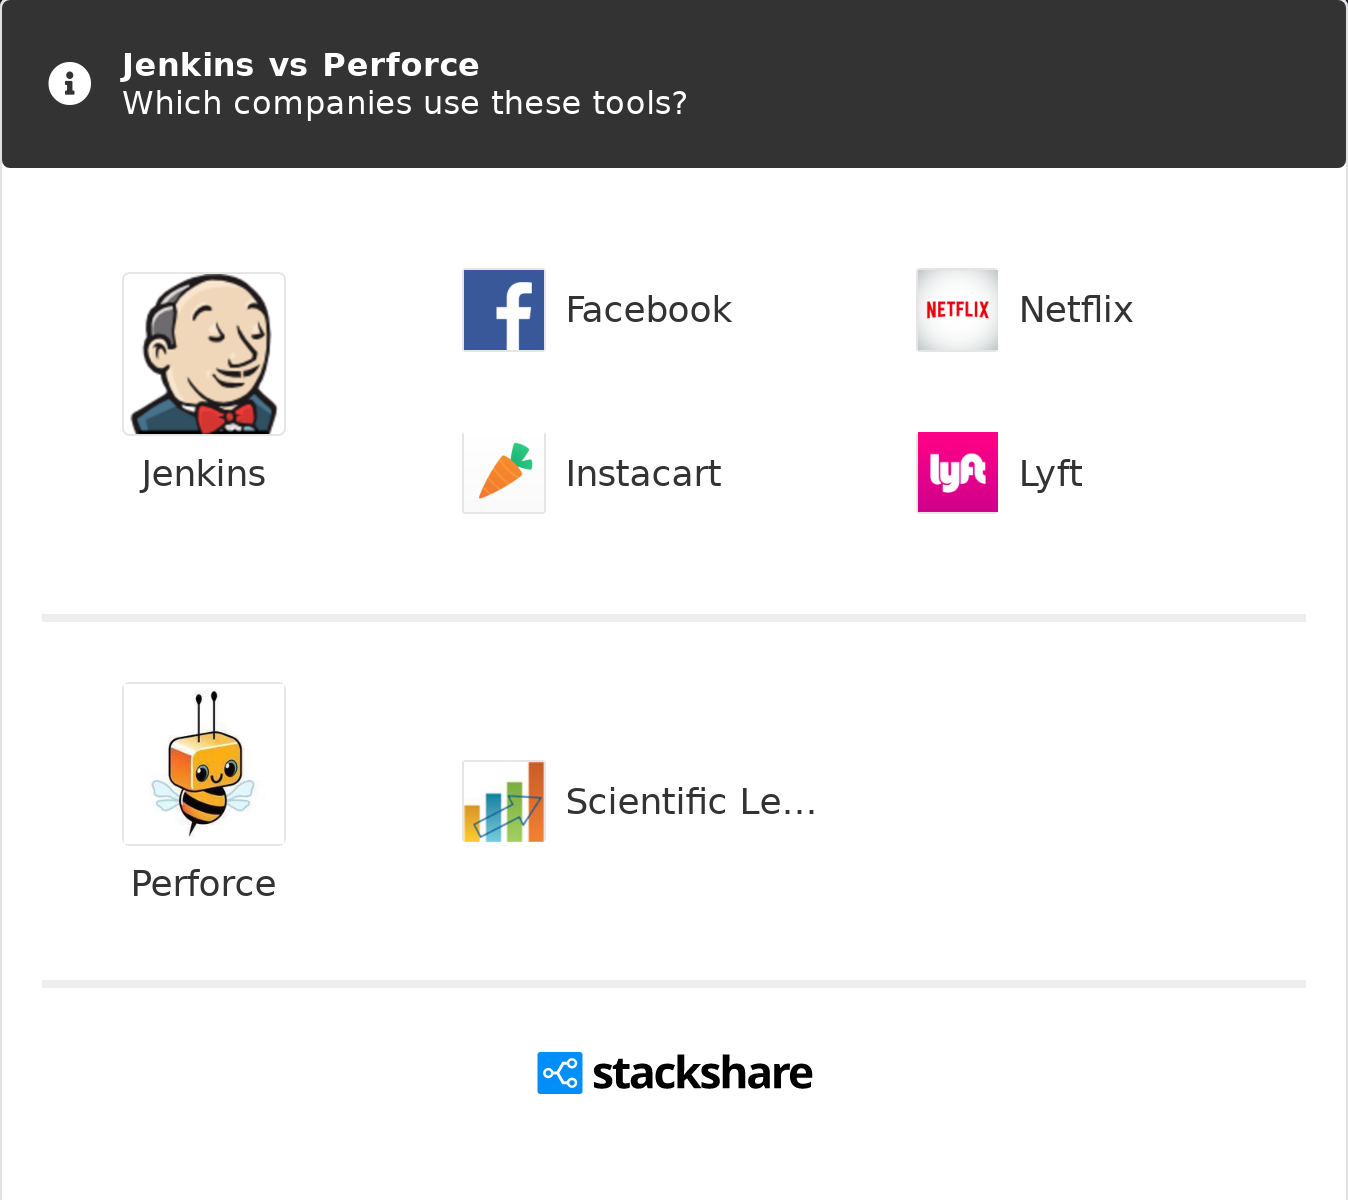 Jenkins vs Perforce | What are the differences?